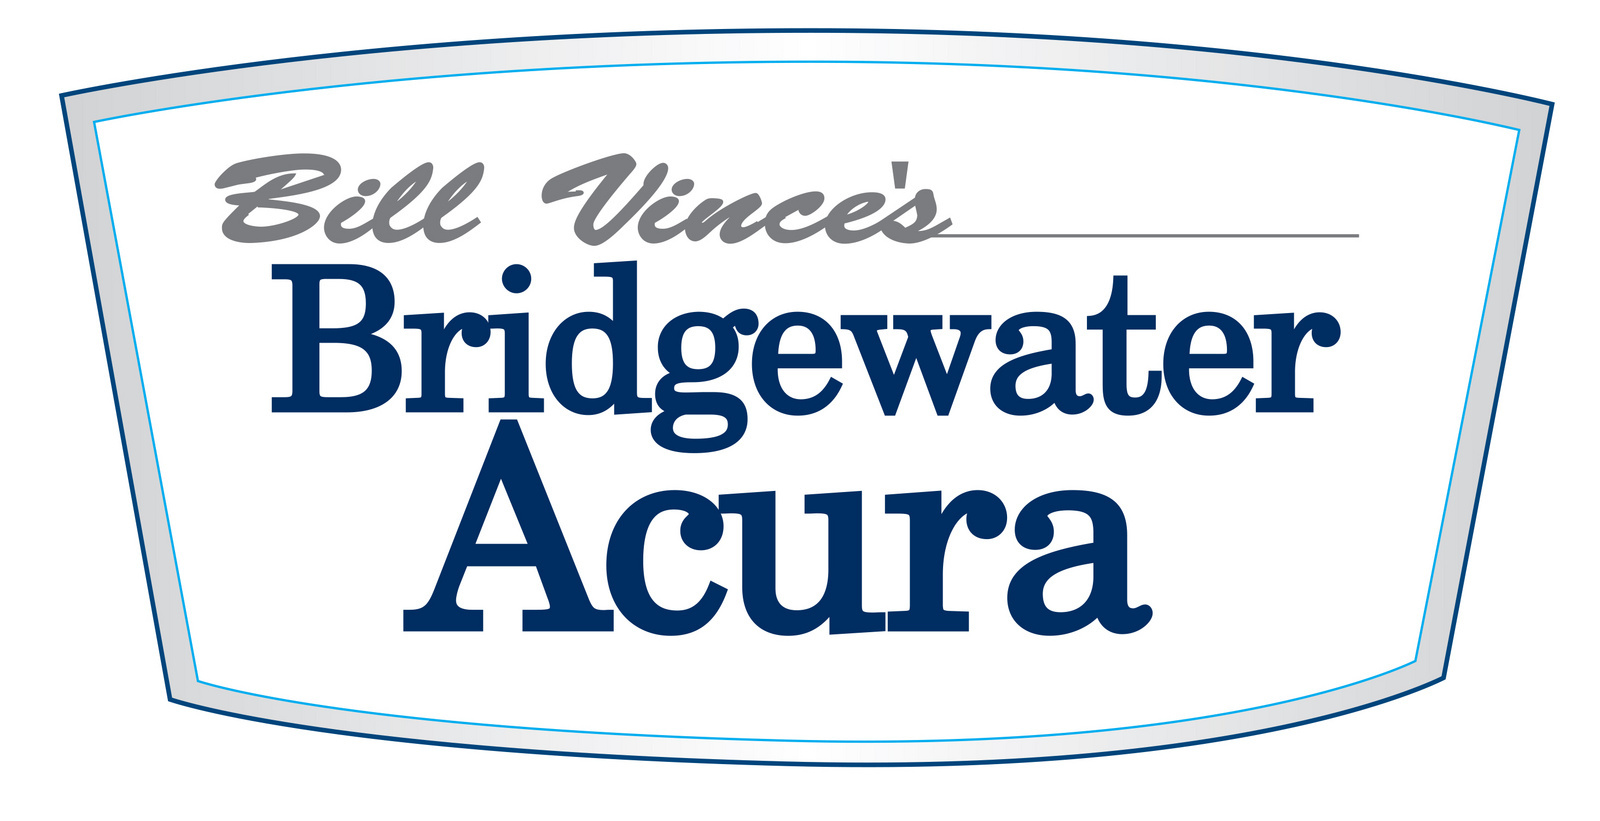 Bill Vince S Bridgewater Acura Bridgewater Nj Reviews